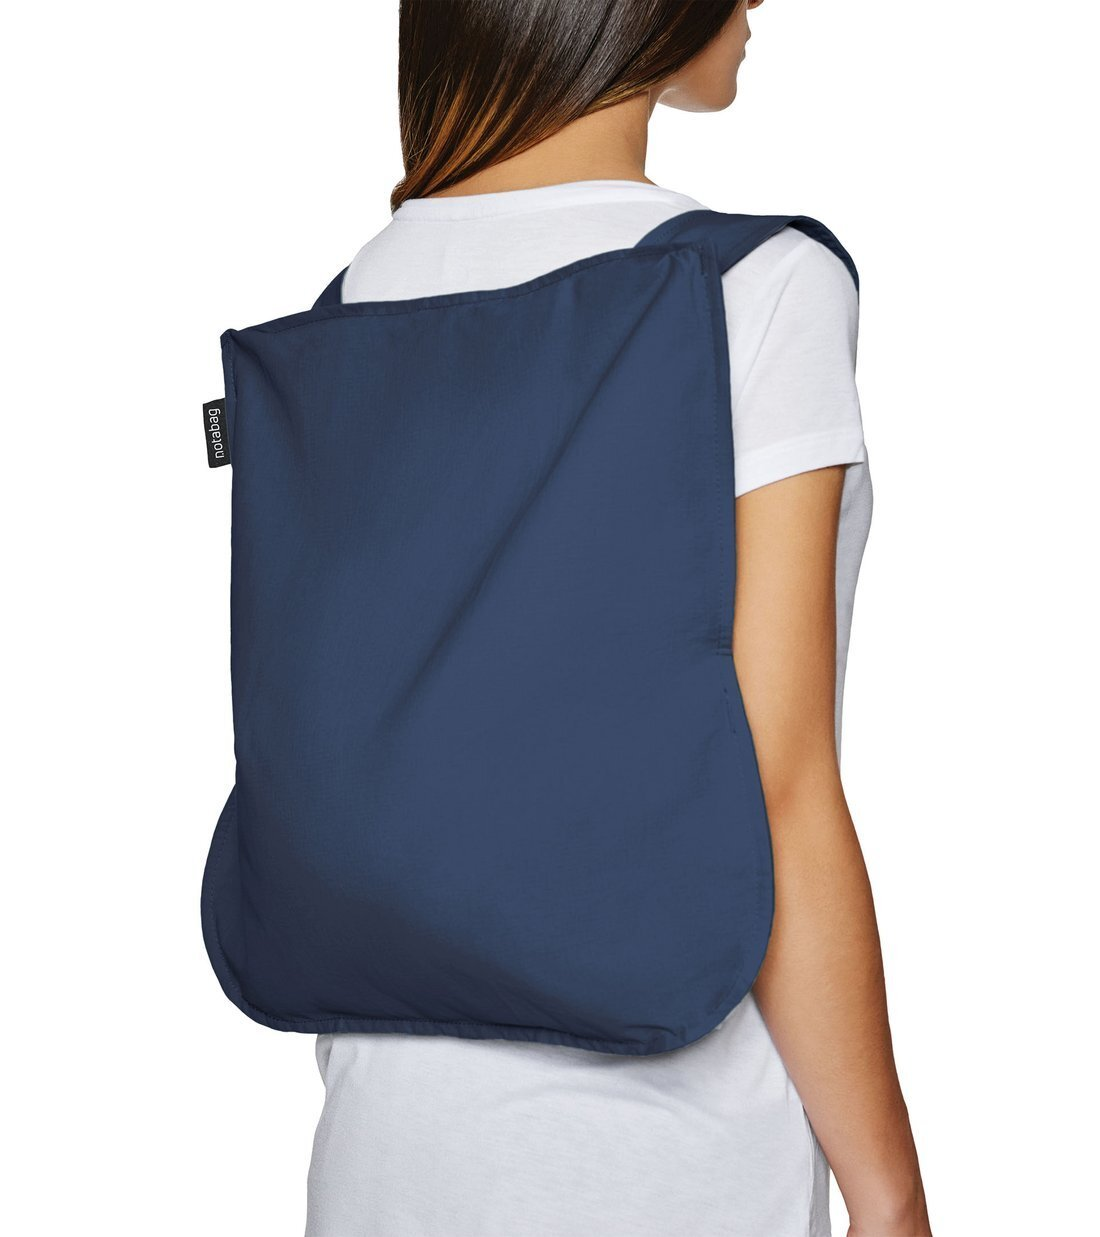 NOTABAG-Navy-Blue-03.jpg